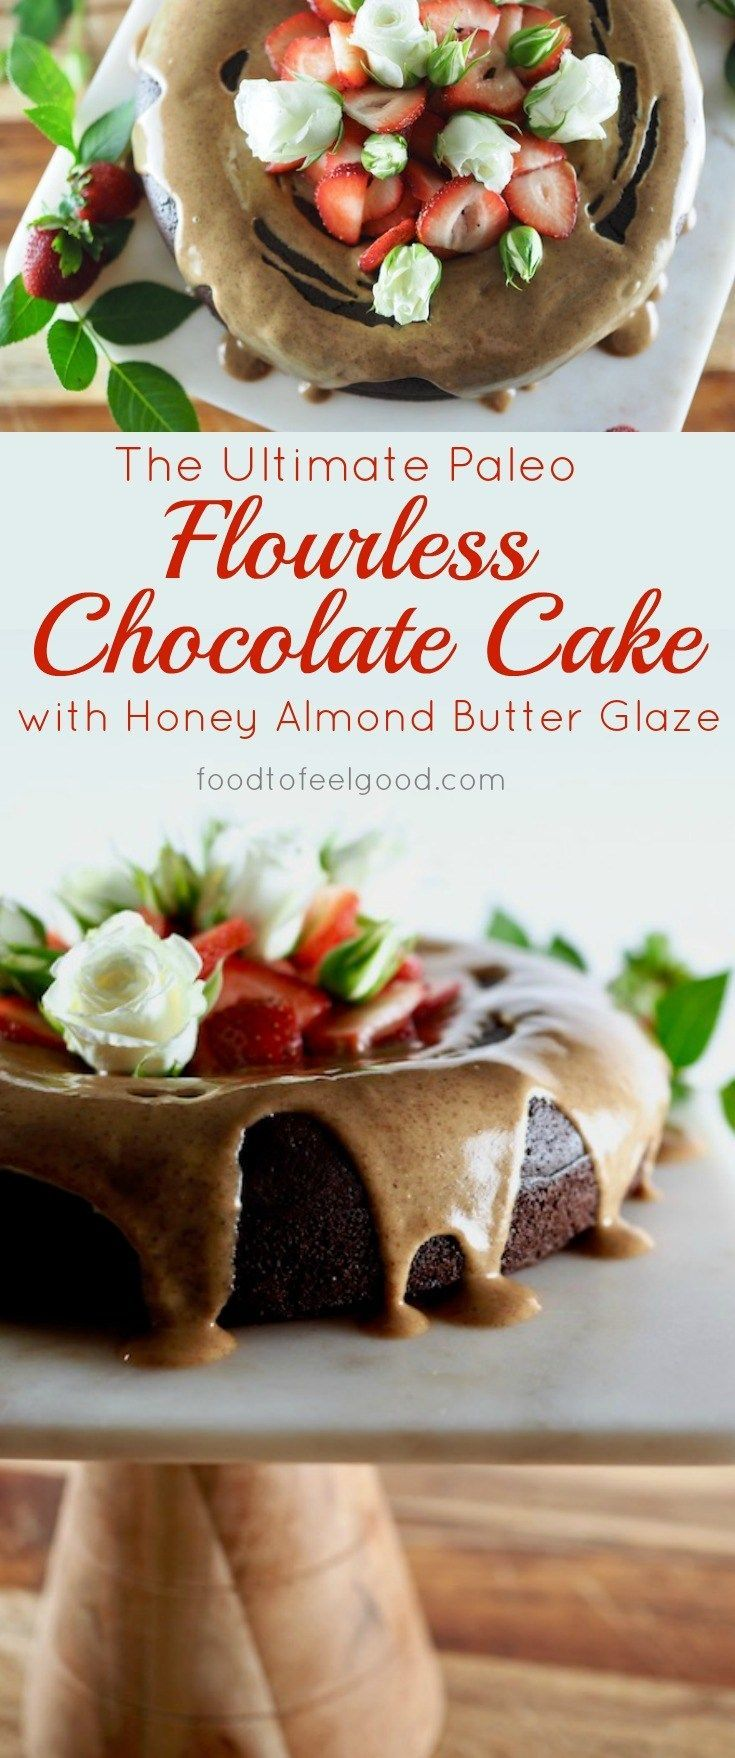 Ultimate Paleo Flourless Chocolate Cake with Honey Almond Butter Glaze | This gluten-free, dairy-free chocolate cake is so rich and decadent, yet it is a much healthier alternative than a traditional chocolate cake with cleaner ingredients and way less sugar, drizzled with a creamy Honey Almond Butter Glaze. #healthyrecipes #paleo #chocolatecake #glutenfree #dessert